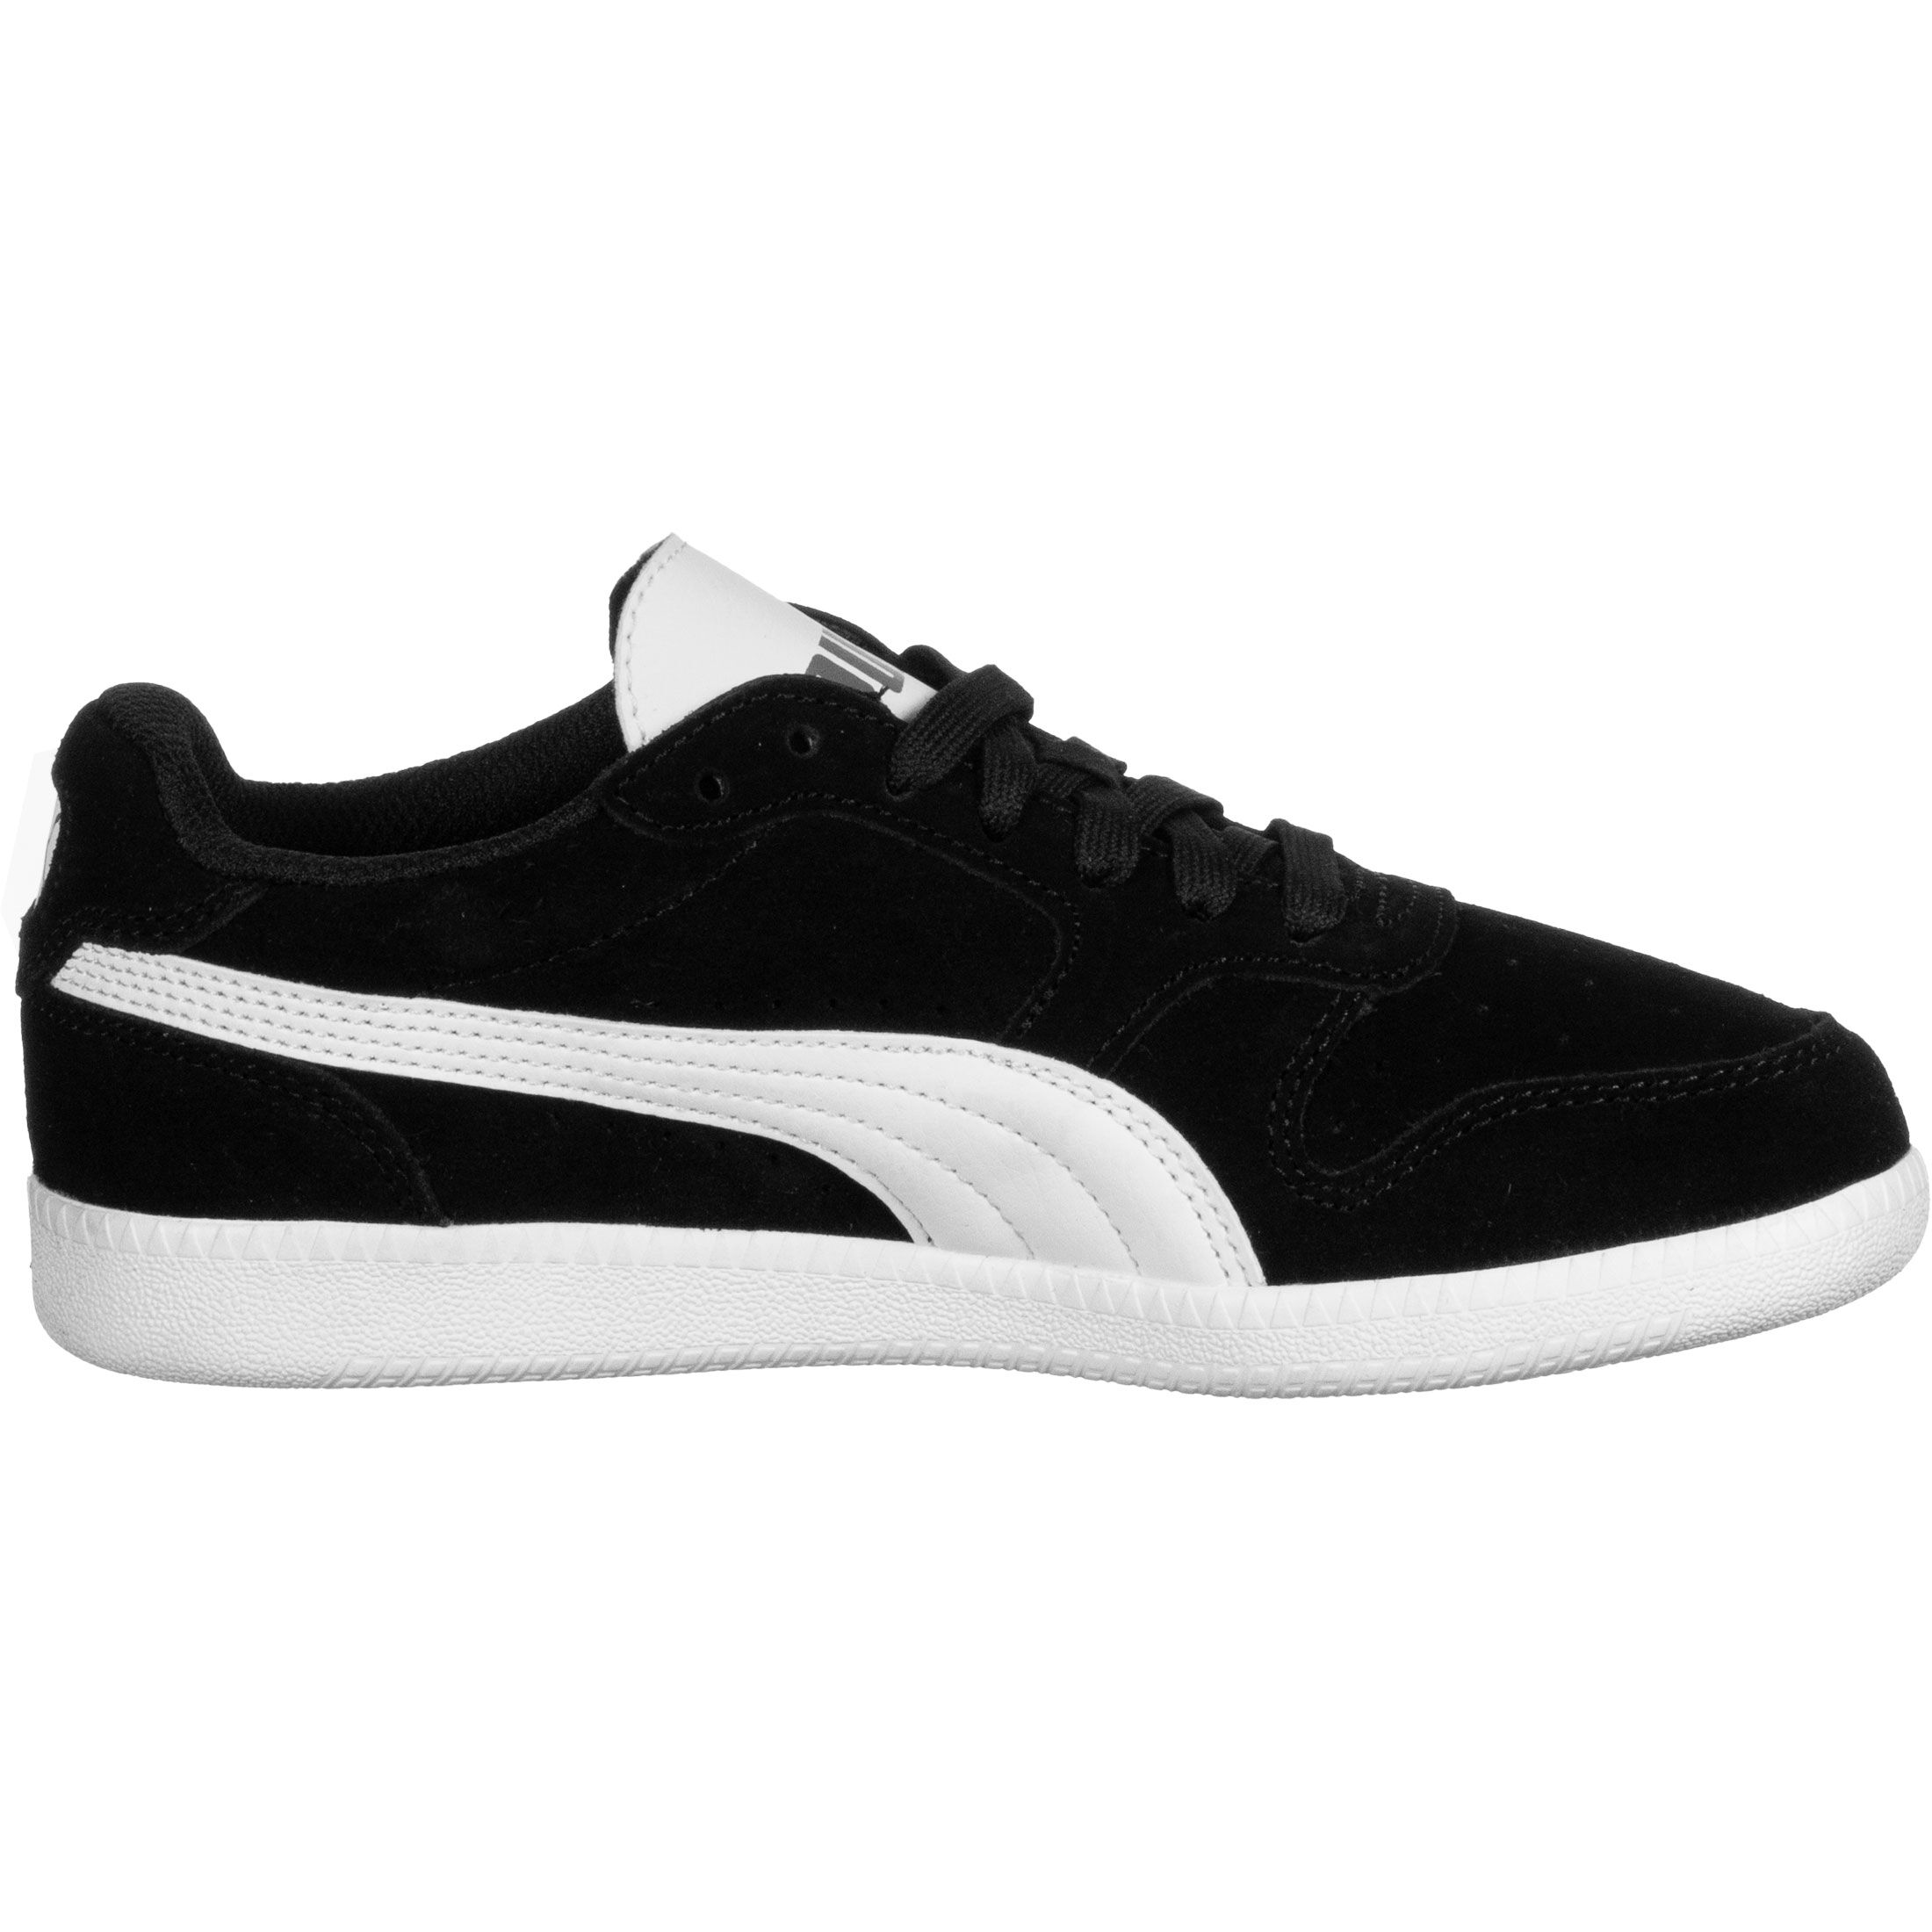 Puma Icra Trainer SD - Sneakers Low at Stylefile